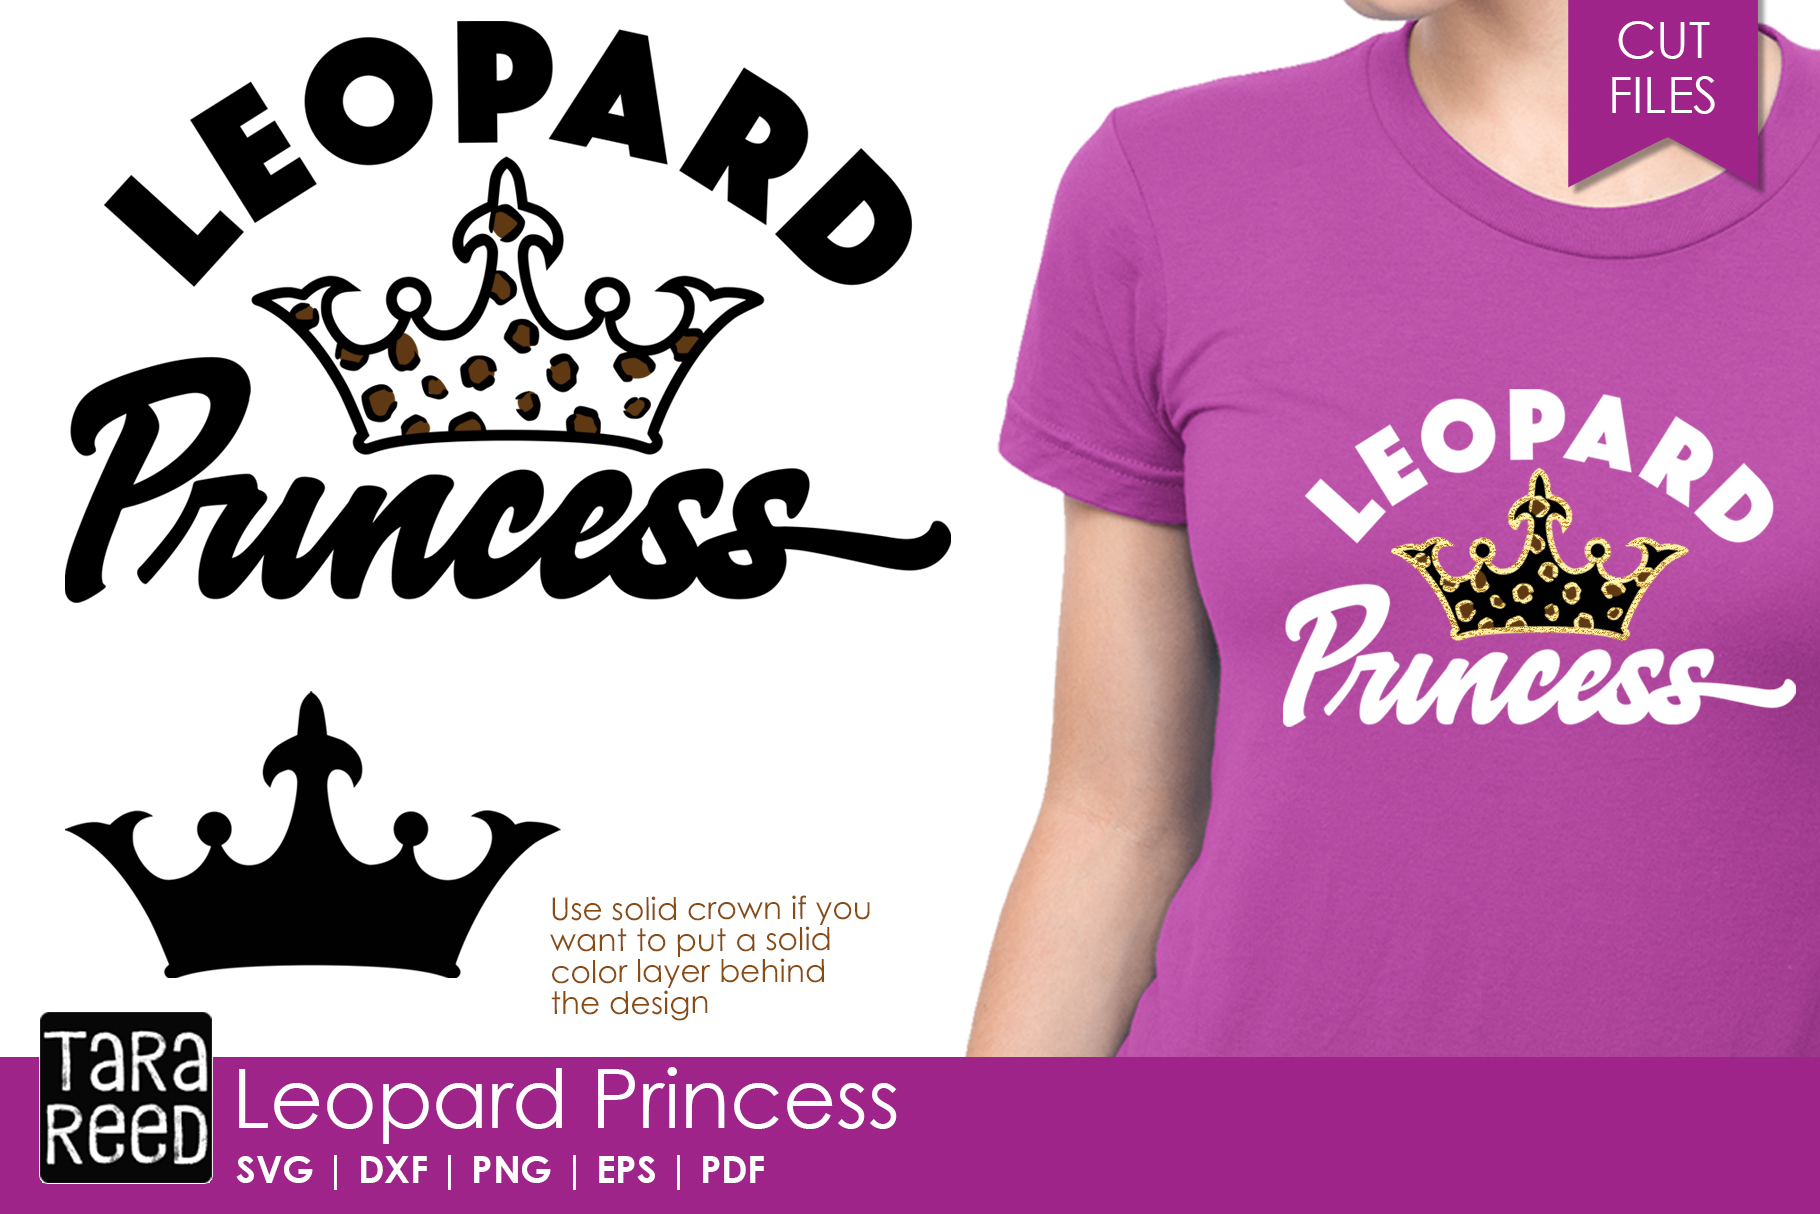 Leopard Princess - Leopard Print SVG and Cut Files example image 1